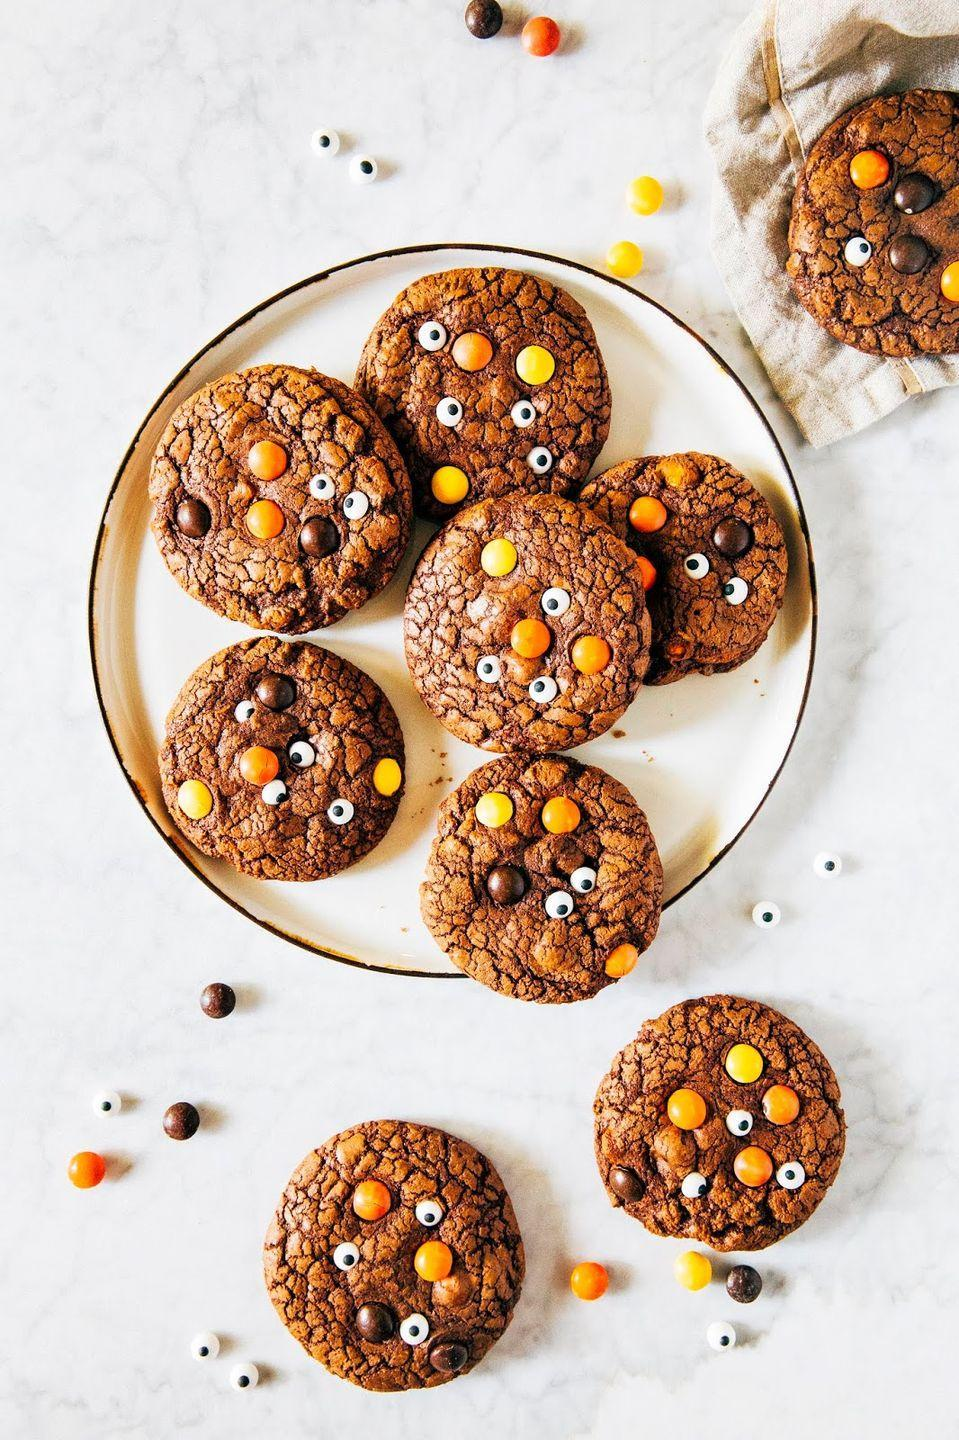 """<p>Few things hit the spot quite like """"brookies,"""" the cookie-brownie remix with just the right ratio of chewiness to crispiness. To make these guys monster-like, stick on a few candy eyes—but wait until <em>after</em> the baking process is complete to do so.</p><p><strong>Get the recipe at <a href=""""https://www.hummingbirdhigh.com/2018/10/monster-brookies.html"""" rel=""""nofollow noopener"""" target=""""_blank"""" data-ylk=""""slk:Hummingbird High"""" class=""""link rapid-noclick-resp"""">Hummingbird High</a>.</strong></p><p><a class=""""link rapid-noclick-resp"""" href=""""https://go.redirectingat.com?id=74968X1596630&url=https%3A%2F%2Fwww.walmart.com%2Fsearch%2F%3Fquery%3Dcookie%2Bsheets&sref=https%3A%2F%2Fwww.thepioneerwoman.com%2Ffood-cooking%2Fmeals-menus%2Fg32110899%2Fbest-halloween-desserts%2F"""" rel=""""nofollow noopener"""" target=""""_blank"""" data-ylk=""""slk:SHOP COOKIE SHEETS"""">SHOP COOKIE SHEETS</a></p>"""